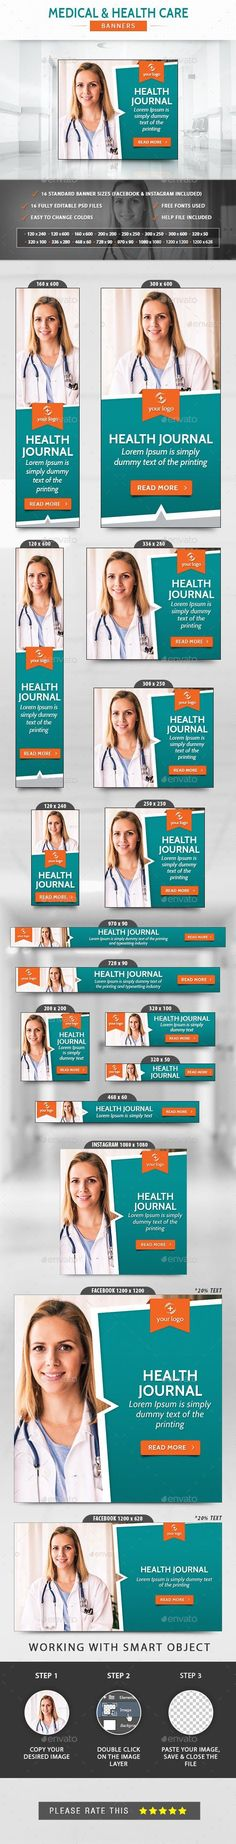 Medical & Health Care Banners for $5 #graphicdesigner #designcollections #templates #Envato #banner #graphic #BannerDesign #design #BannerTemplate #graphicresources #graphicdesign #WebBanners #psd #PhotoShop Logo Maker, Cross Training, Icon Design, Timeline Cover, Medical Health Care, Online Campaign, Medical Journals, Image Categories, Promote Your Business